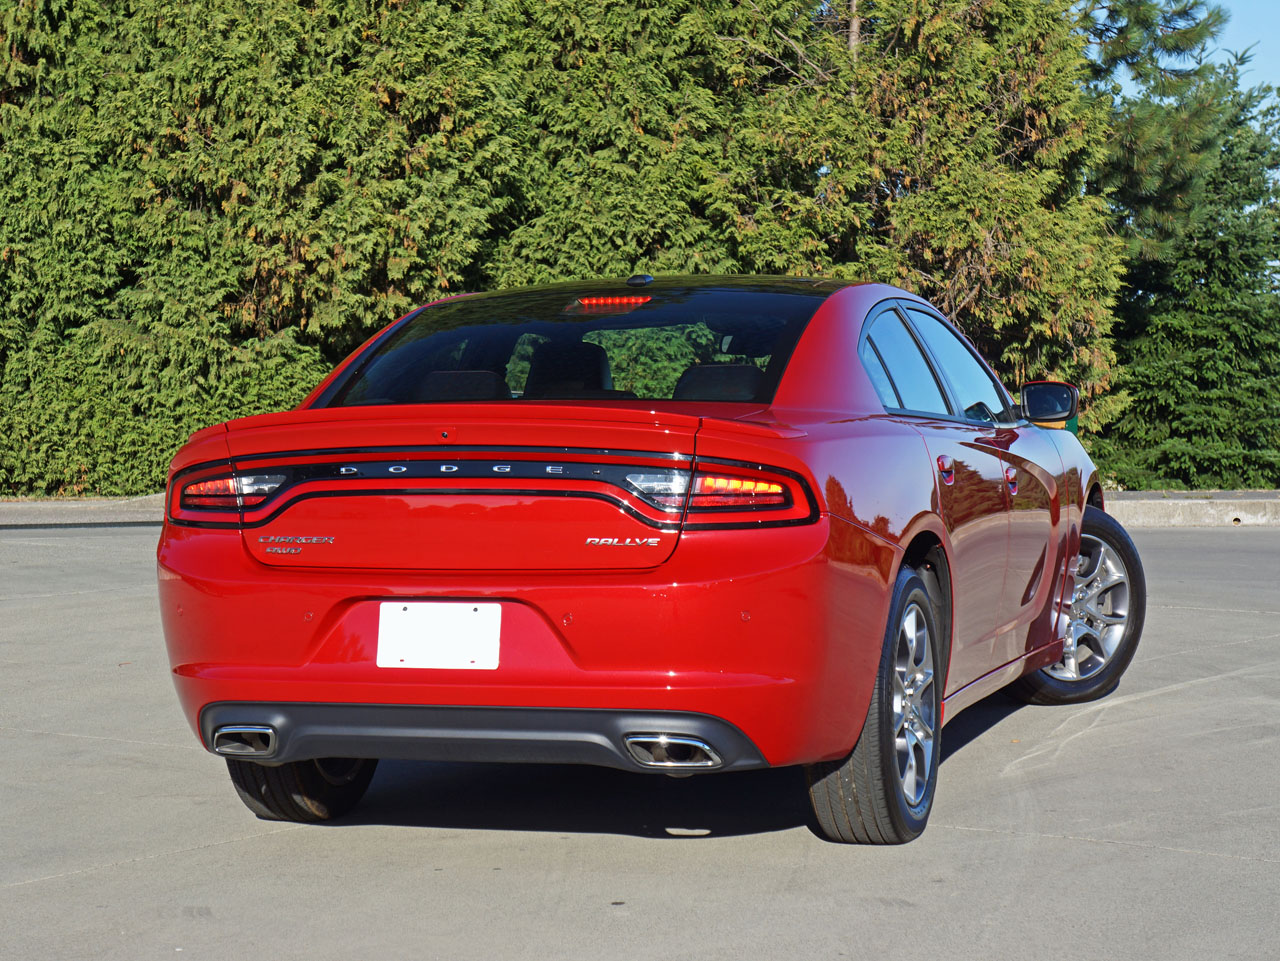 For 2017 Dodge Has Given Its Full Size Charger Sport Sedan Such A Significant Mid Cycle Refresh That It Might As Well Be Complete